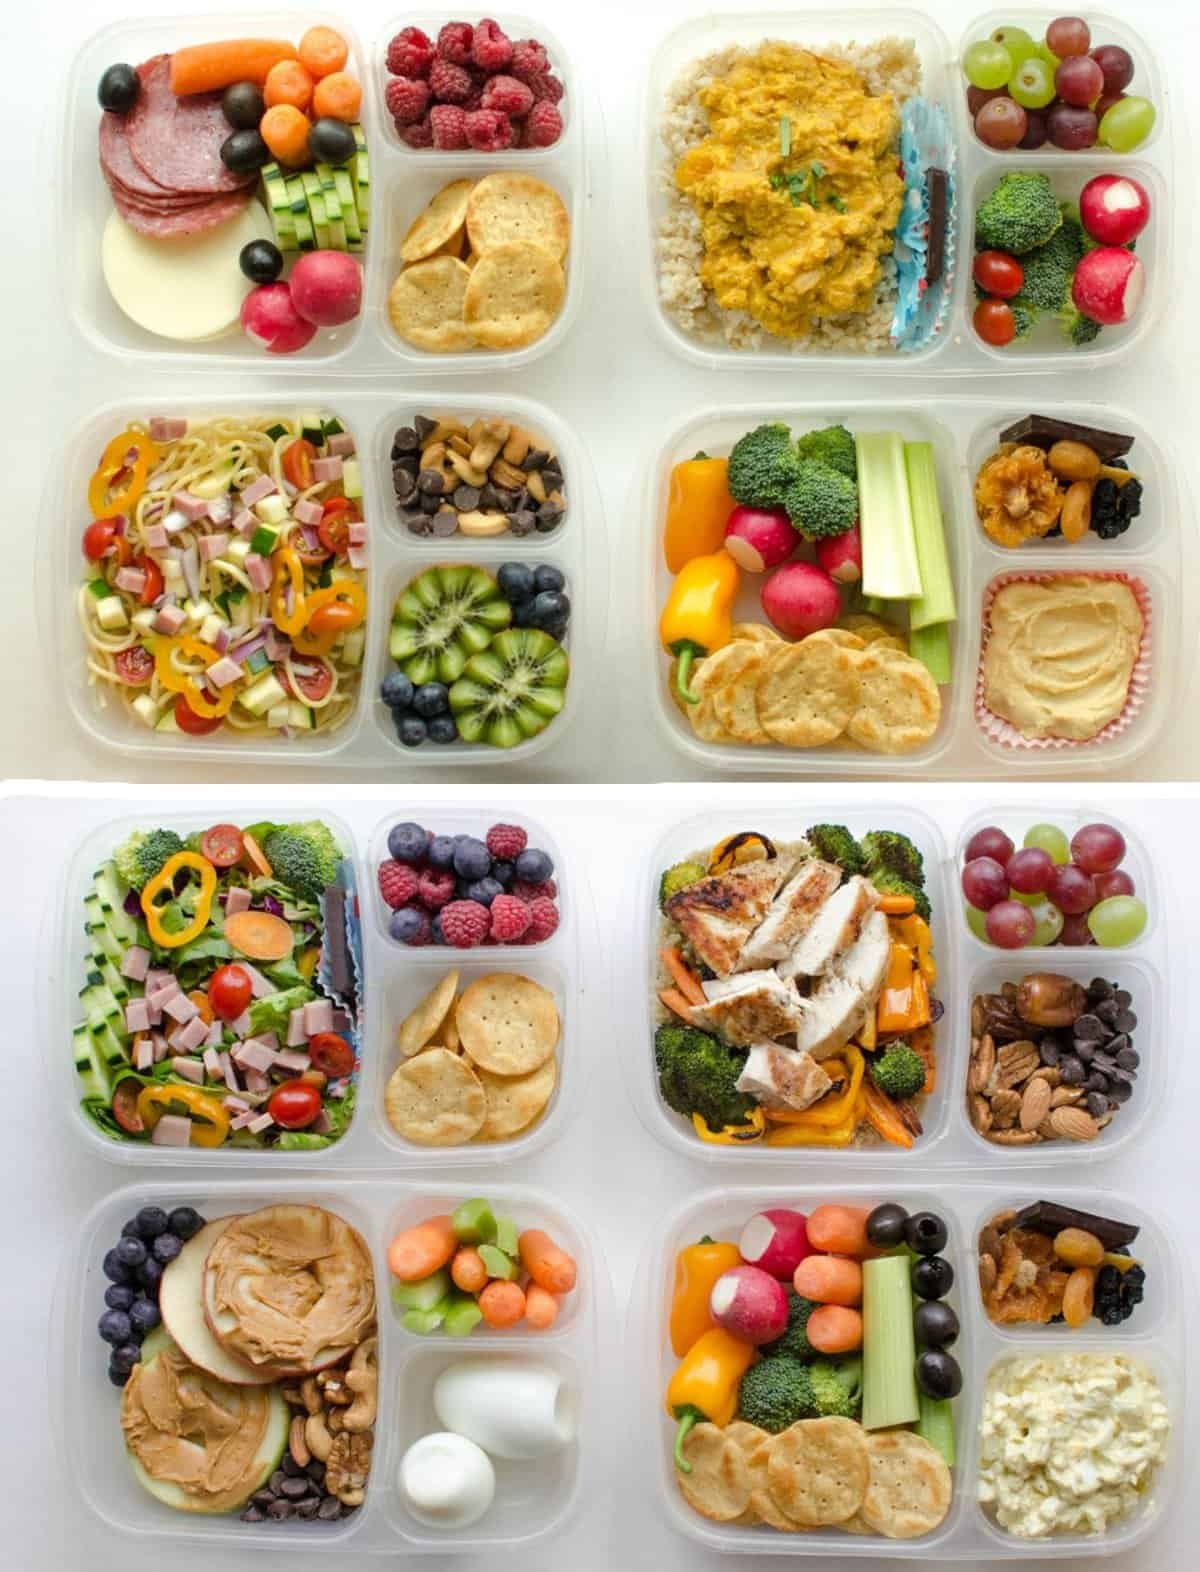 Lunch In A Box 8 Adult Lunch Box Ideas Healthy Easy Work Lunch Ideas